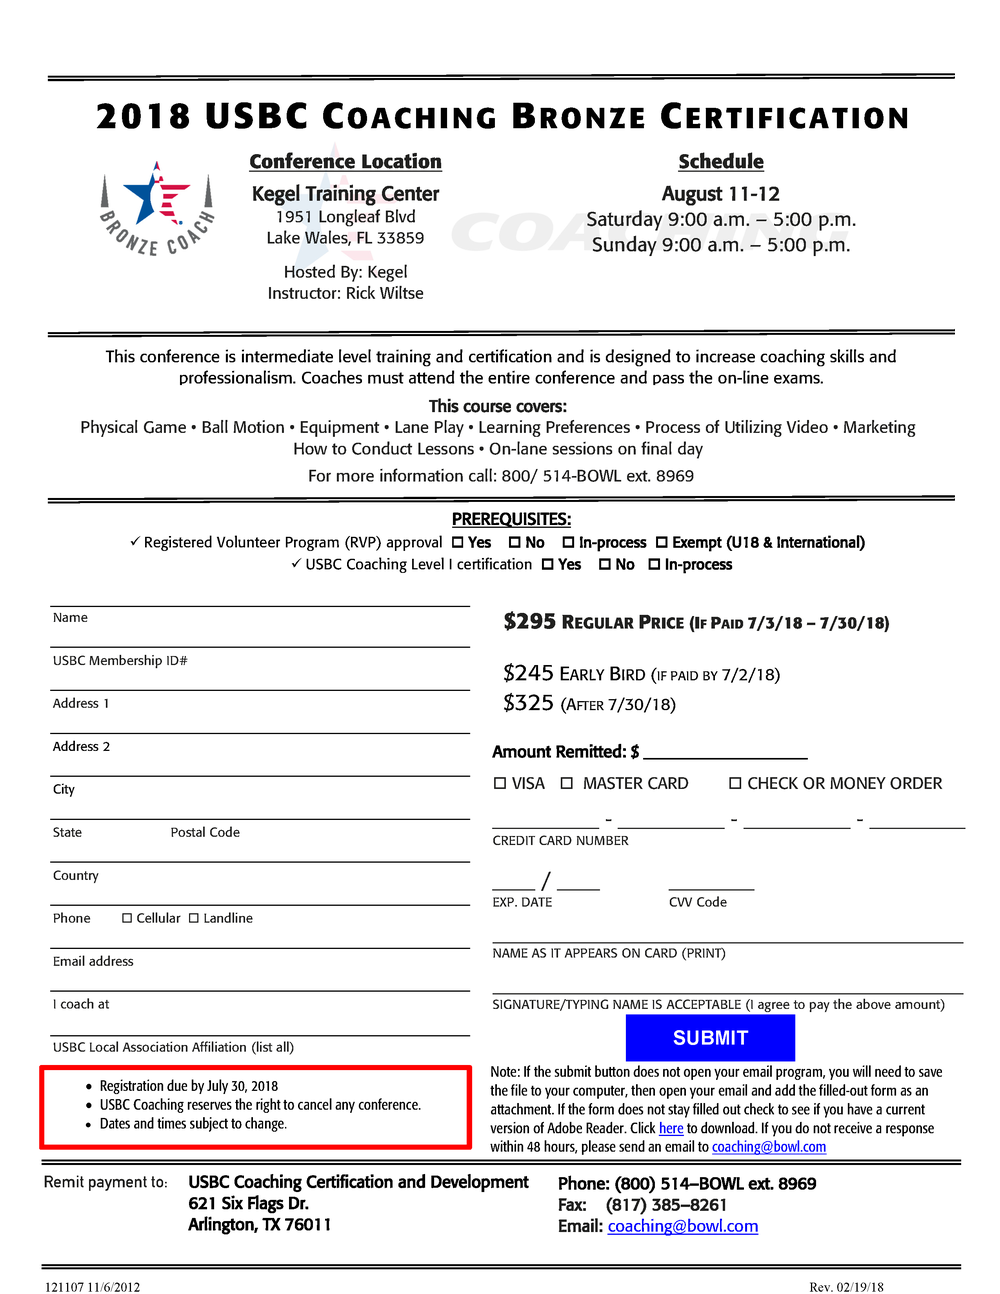 8_11_18 Lake Wales, FL_Bronze Registration Form_Fill-in.png